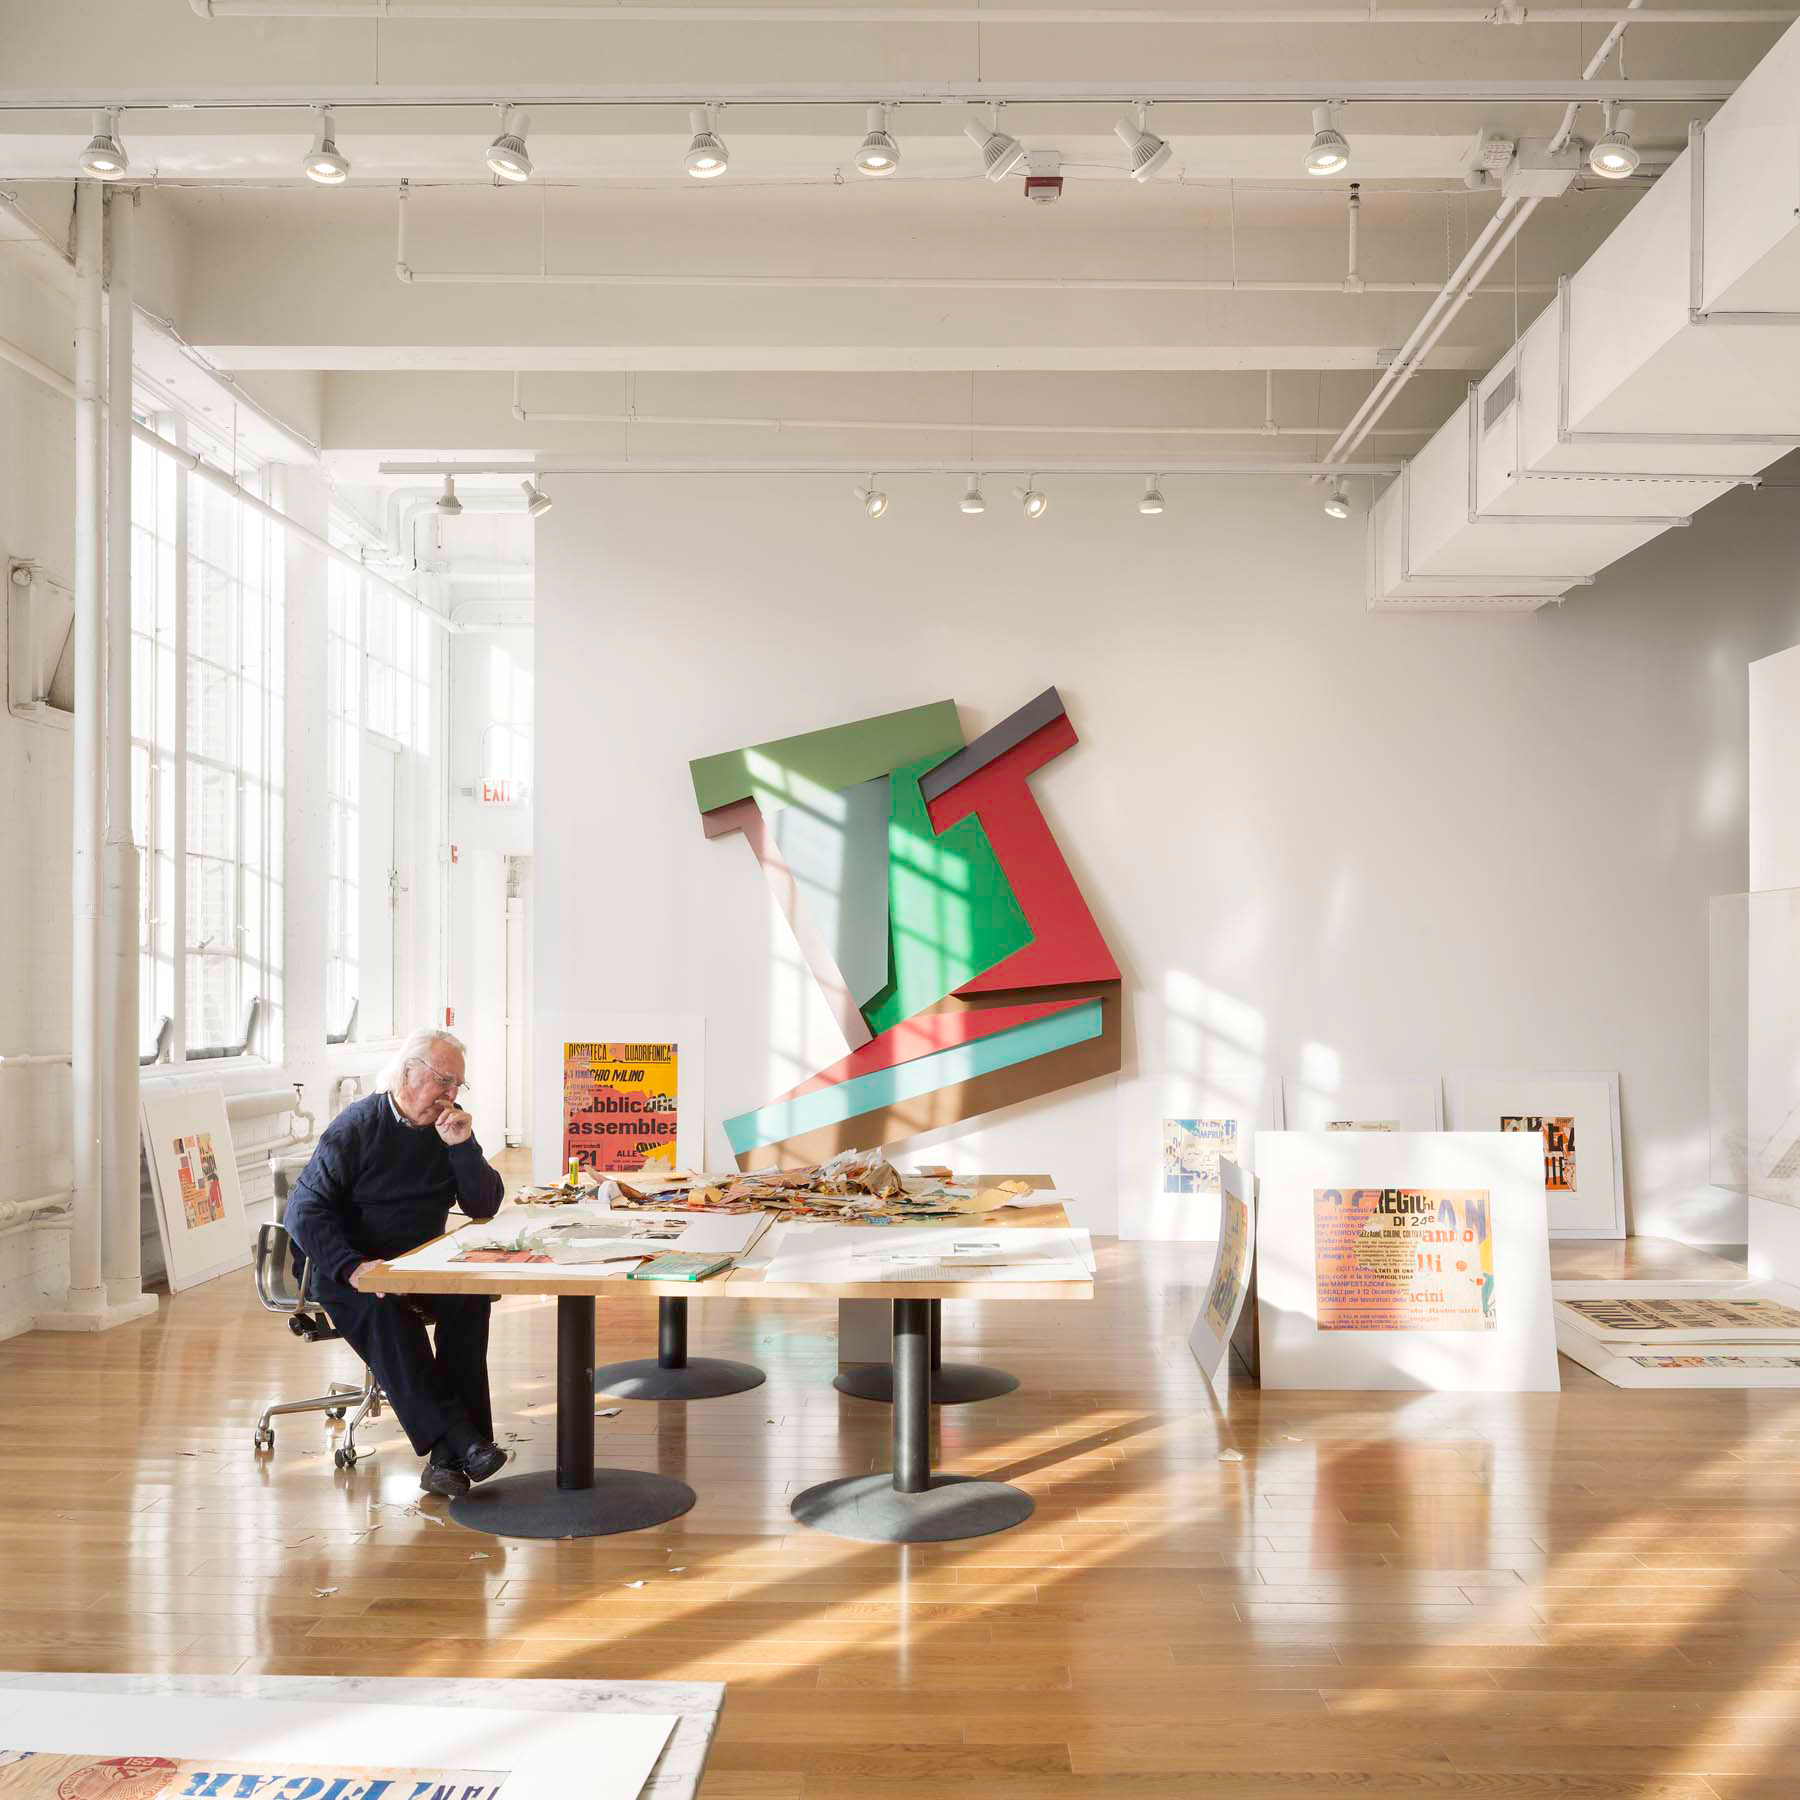 Richard meier takes over interior design s instagram for Office design instagram